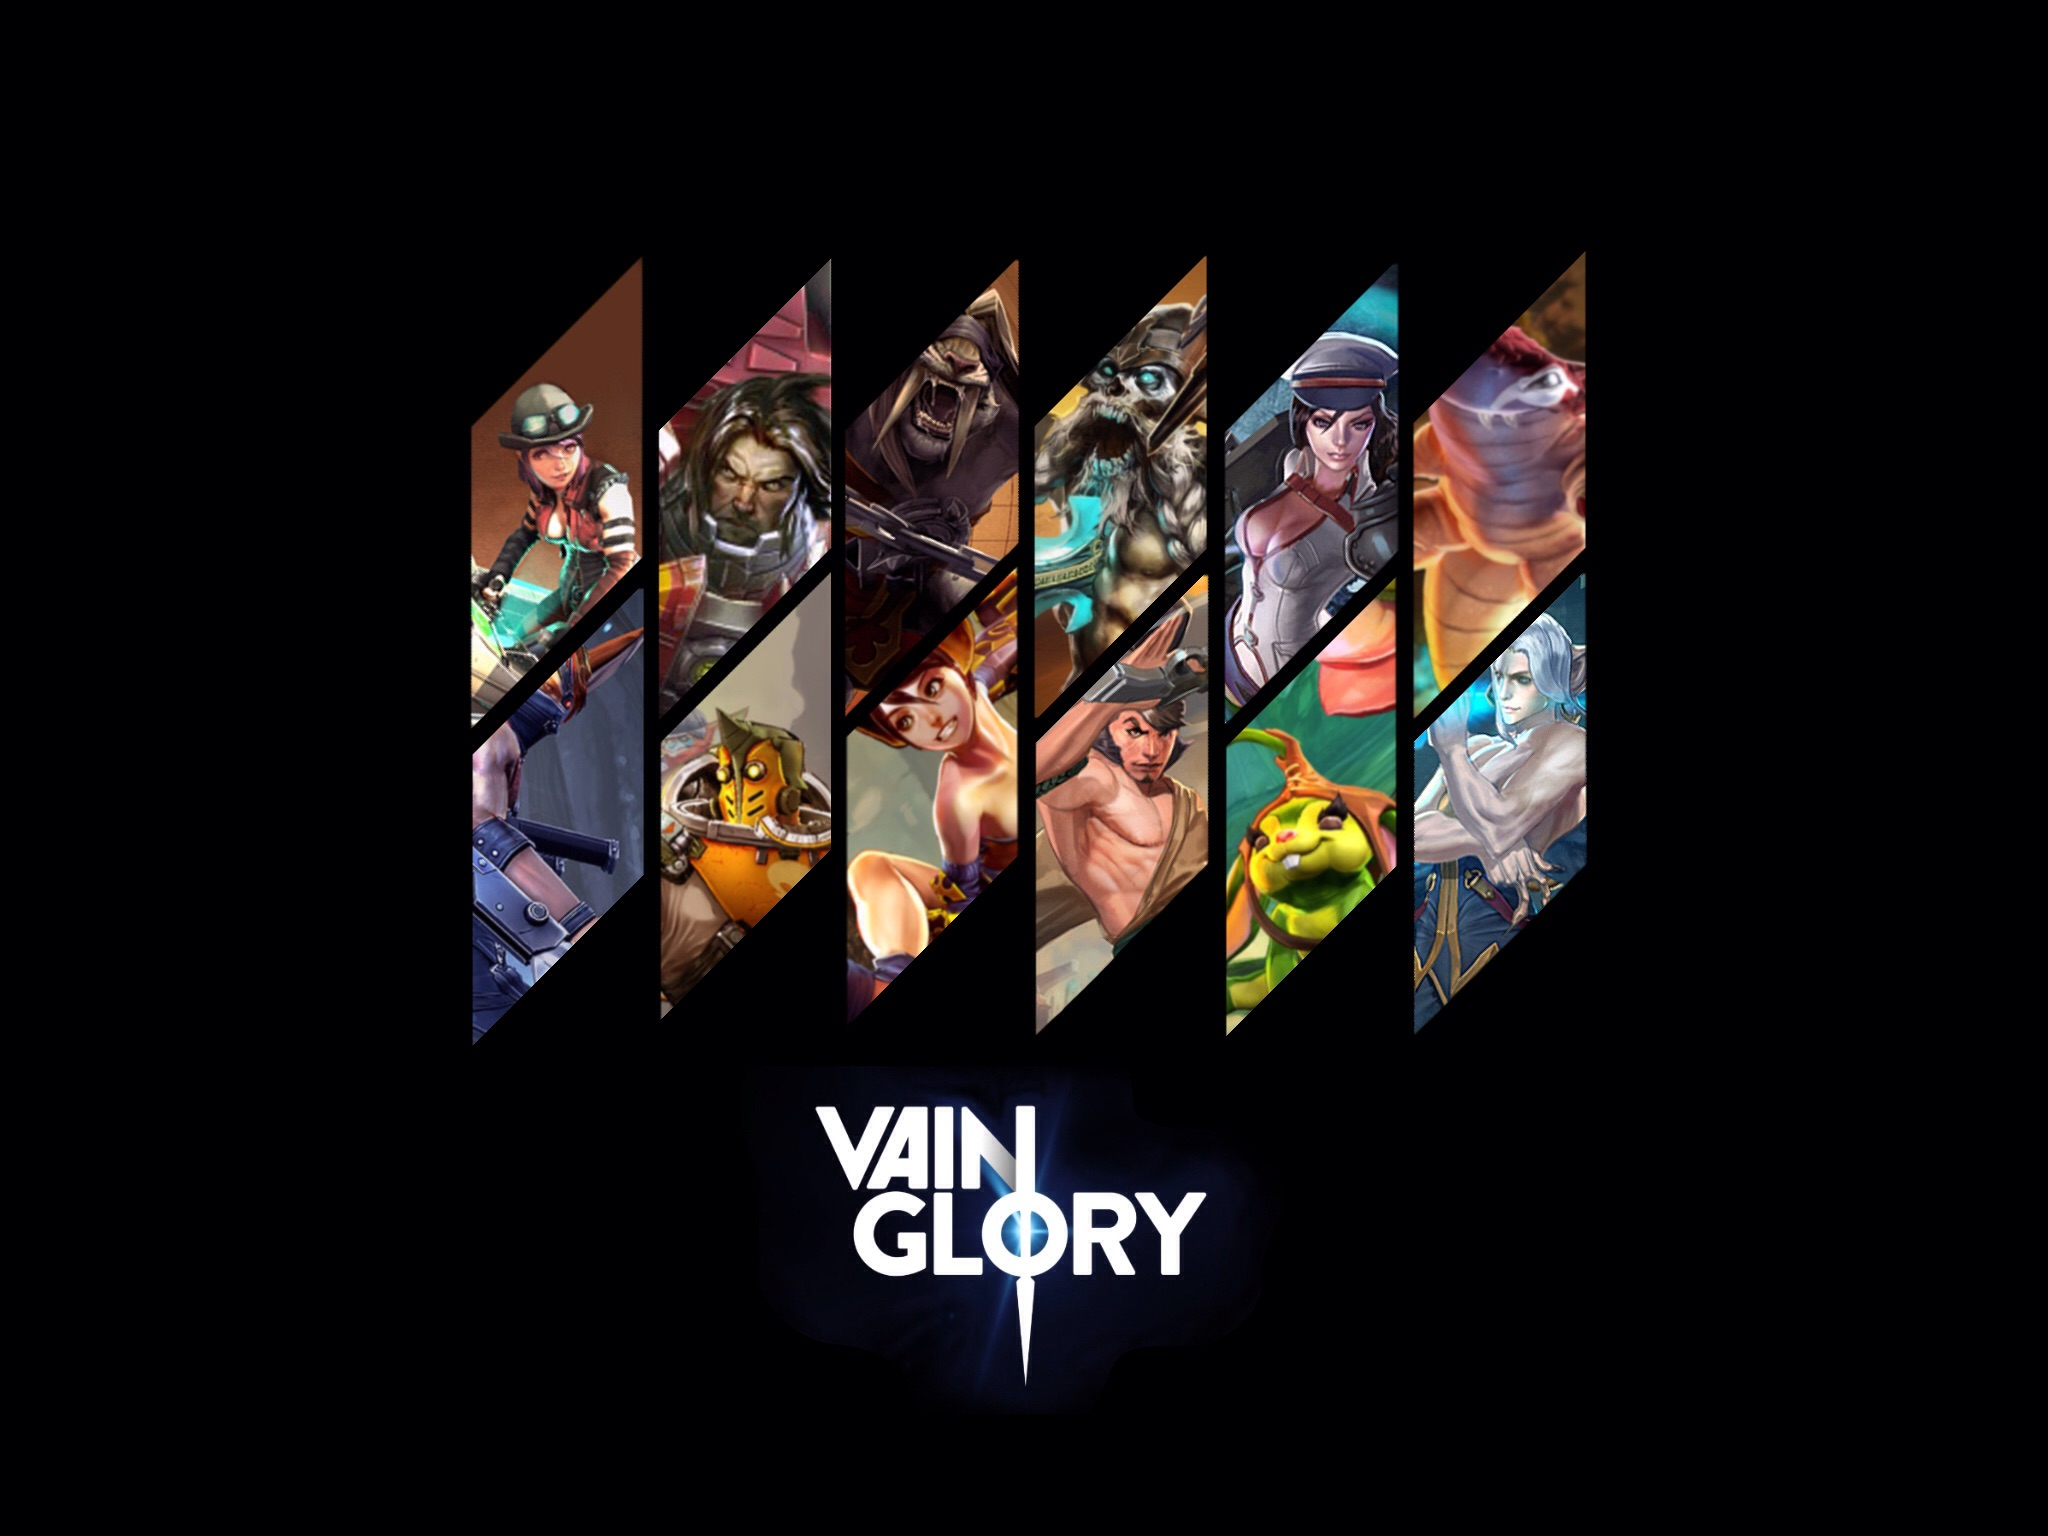 The Vainglory Wallpaper Contest! Win ICE! | Page 10 | Vainglory ...